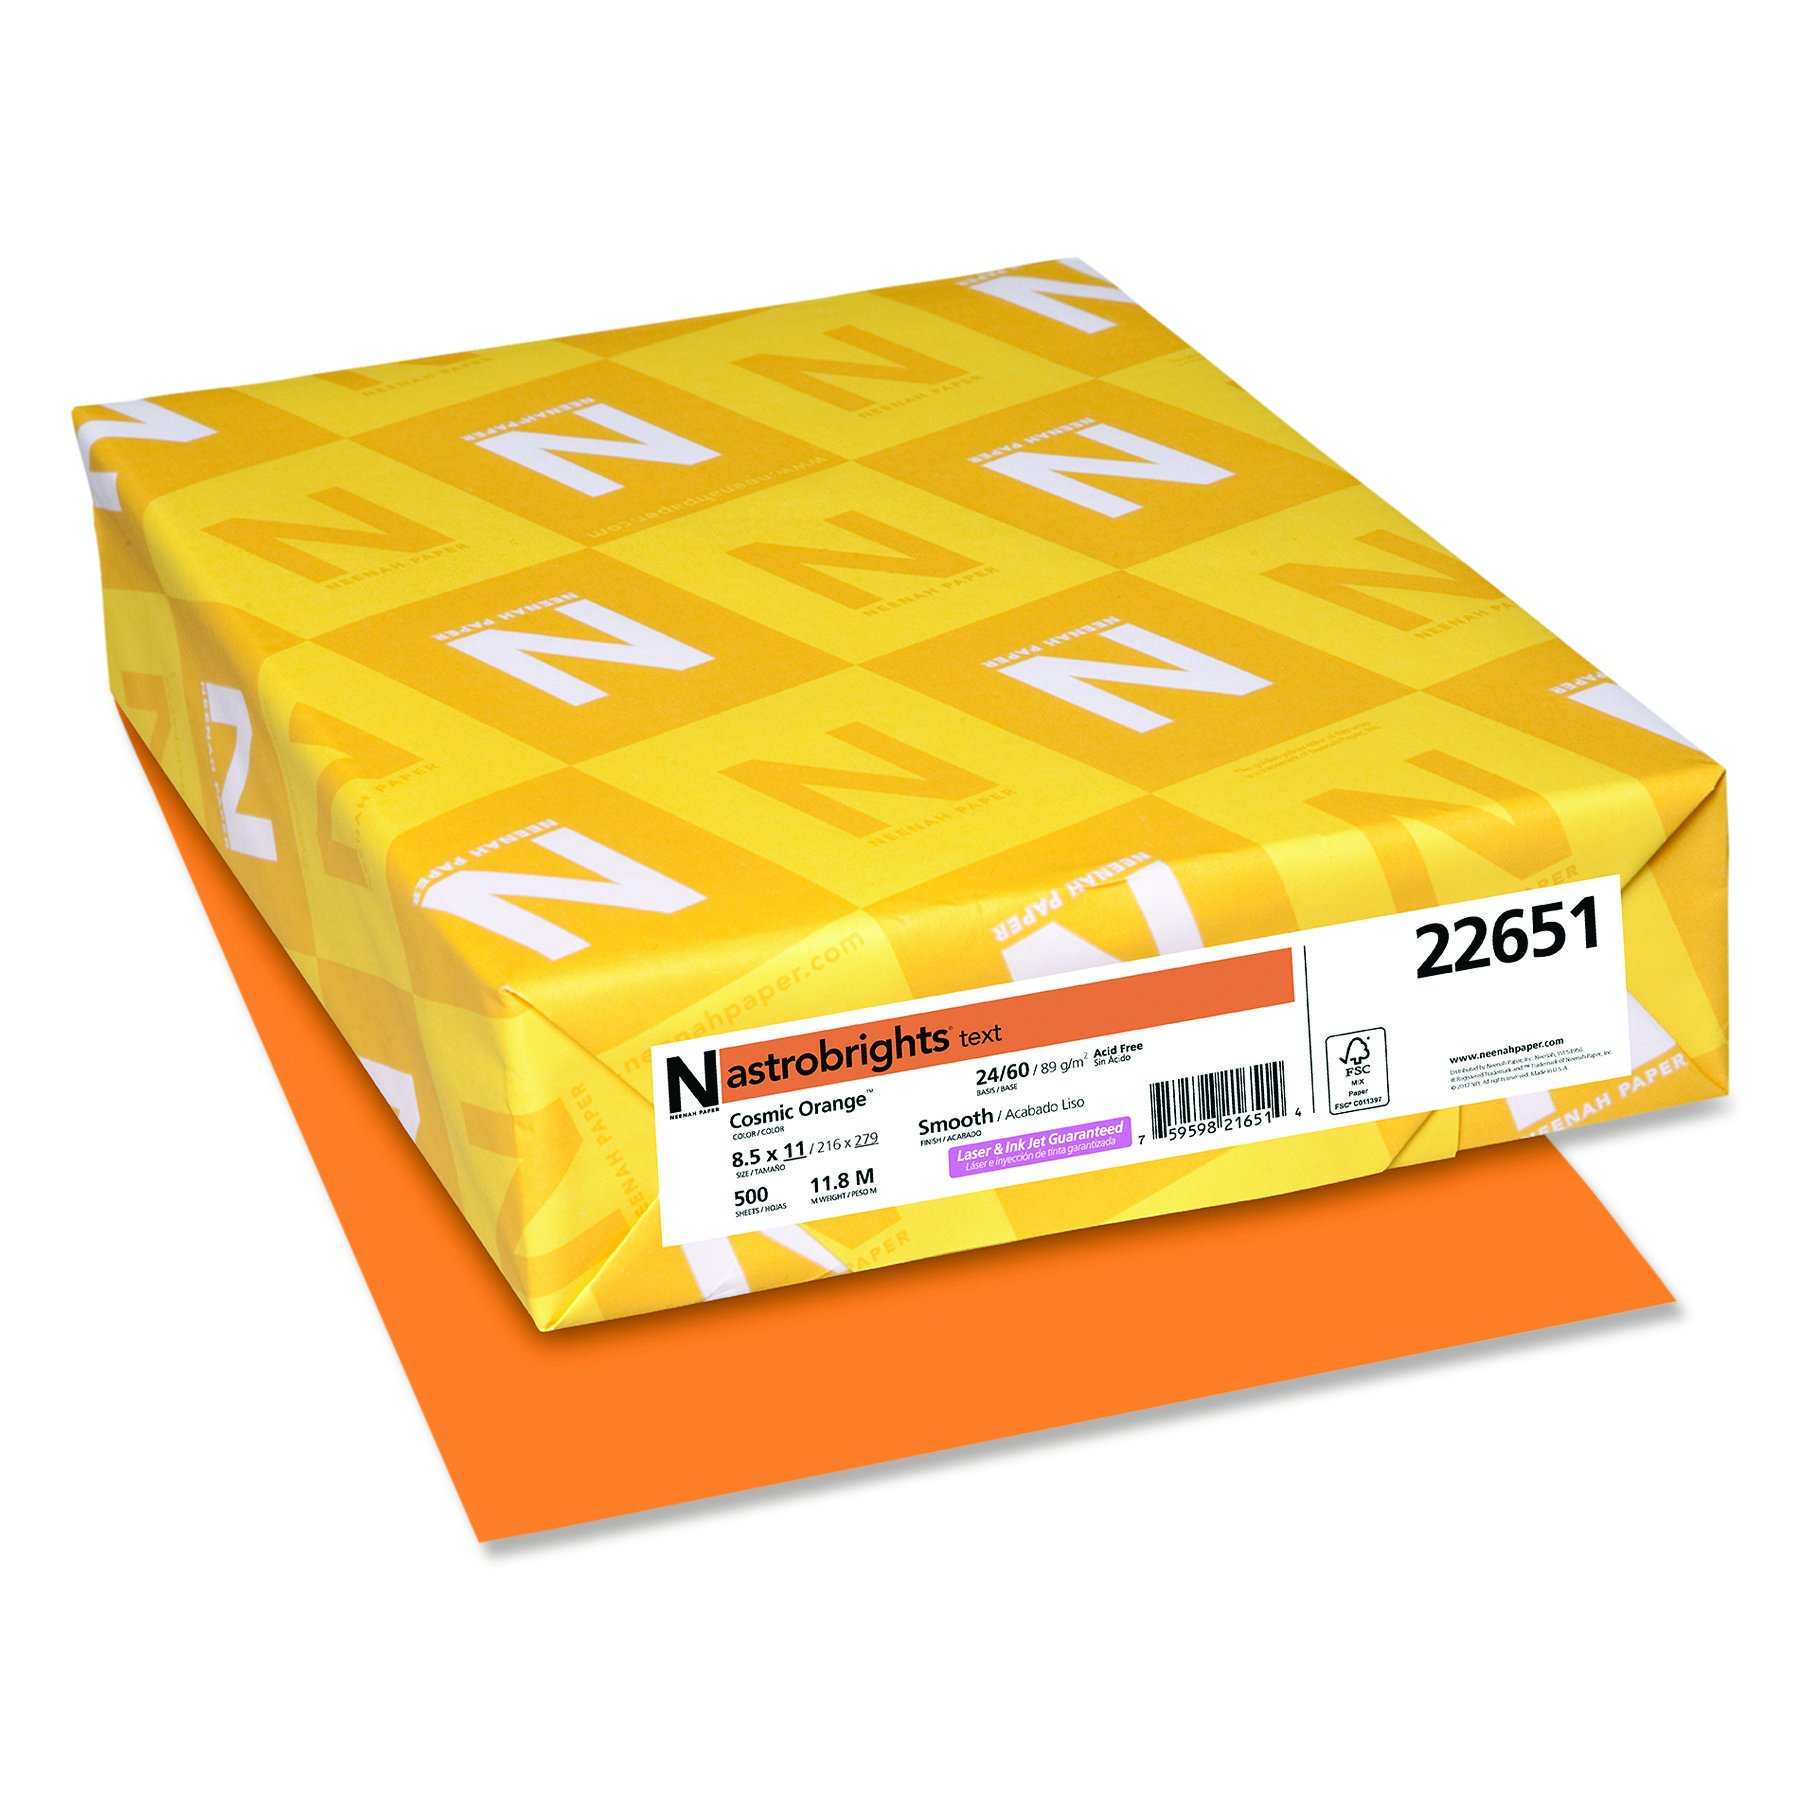 Wasusau Astrobrights Heavy Duty Paper, 24 lb, 8.5 x 11 Inches, Cosmic Orange, 500 Sheets (22661) by Neenah